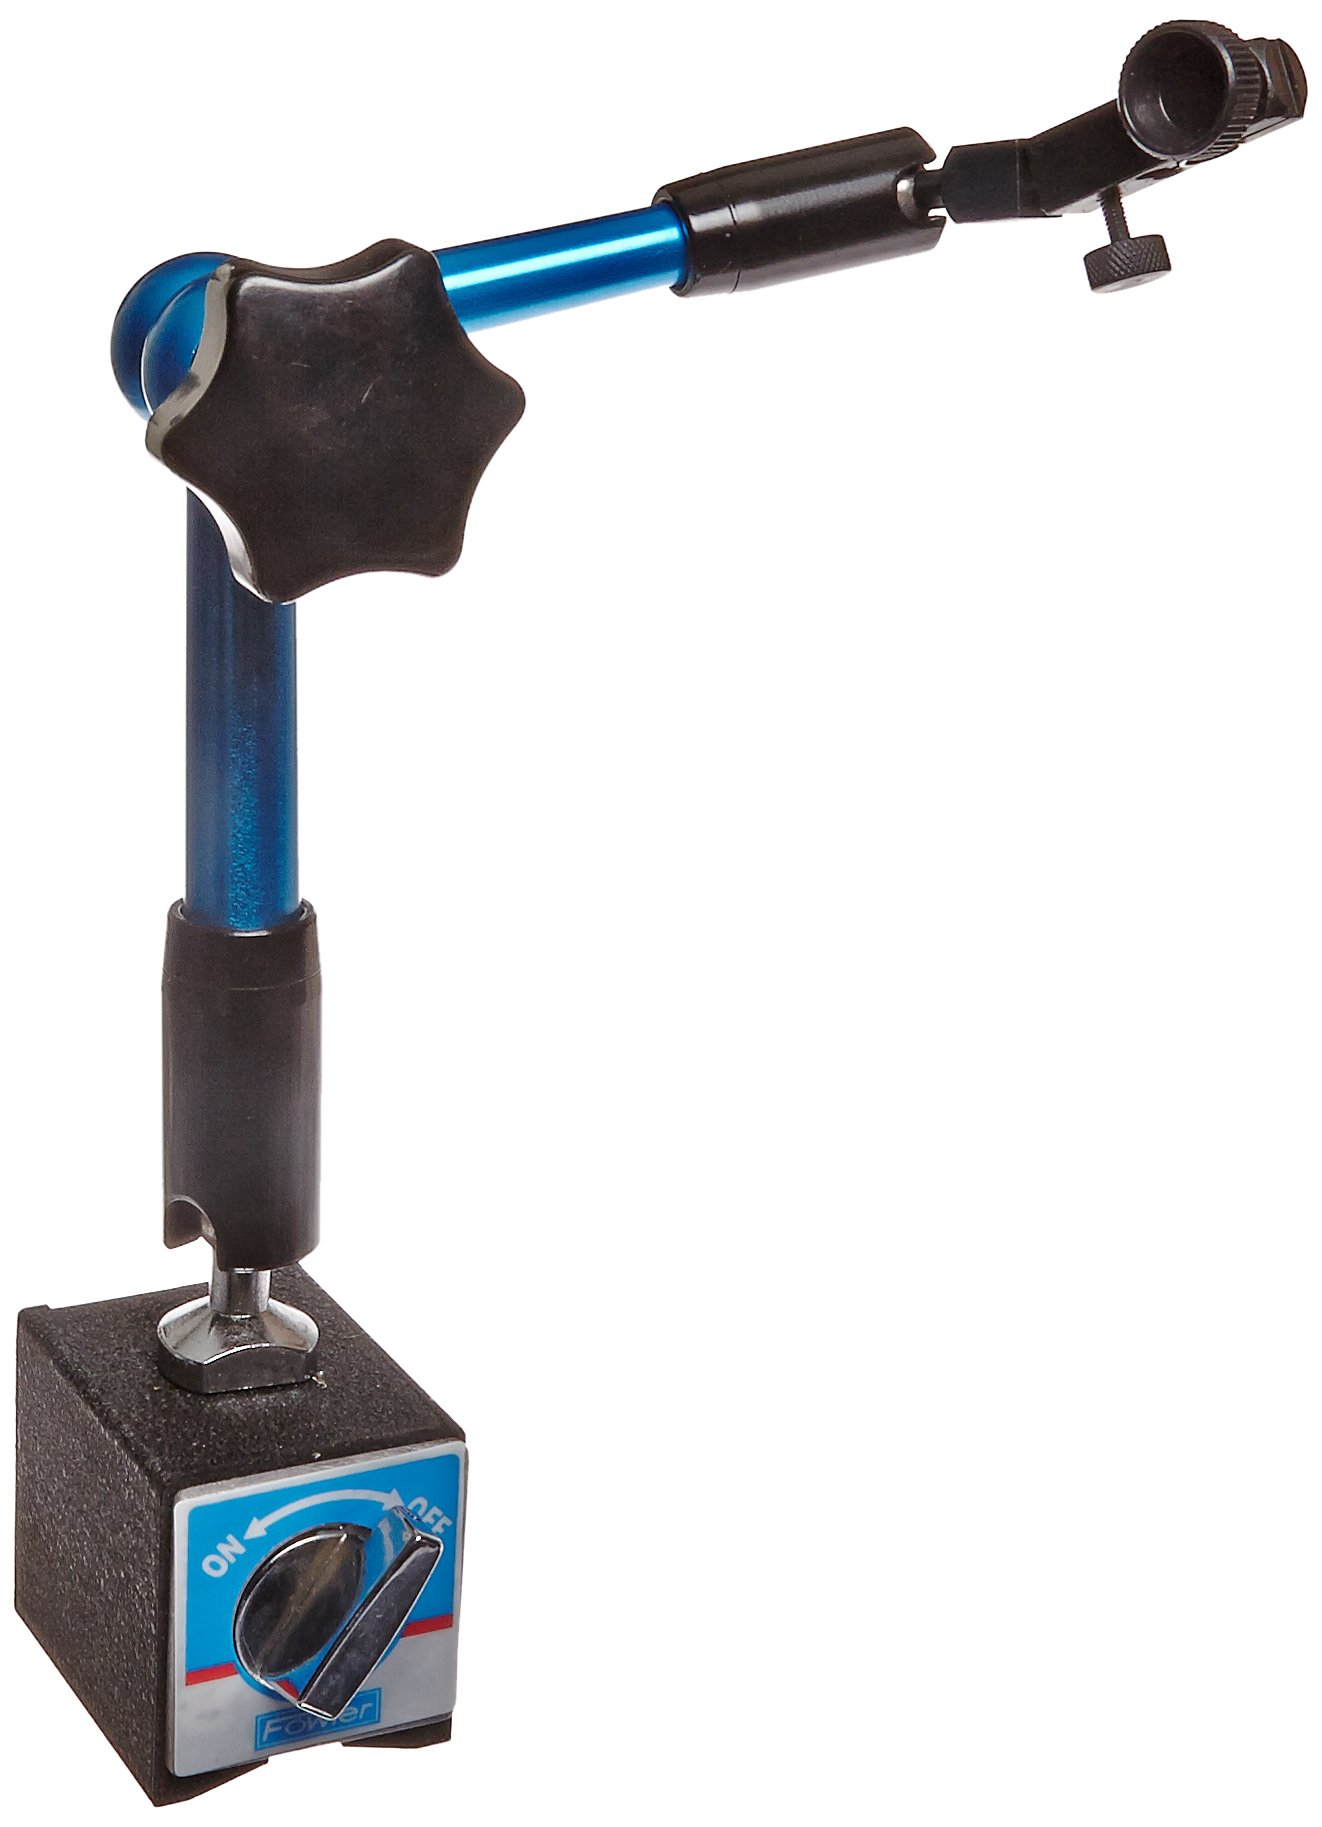 Fowler 52-585-095 Hydraulic Arm Magnetic Base, 180lbs Pulling Power